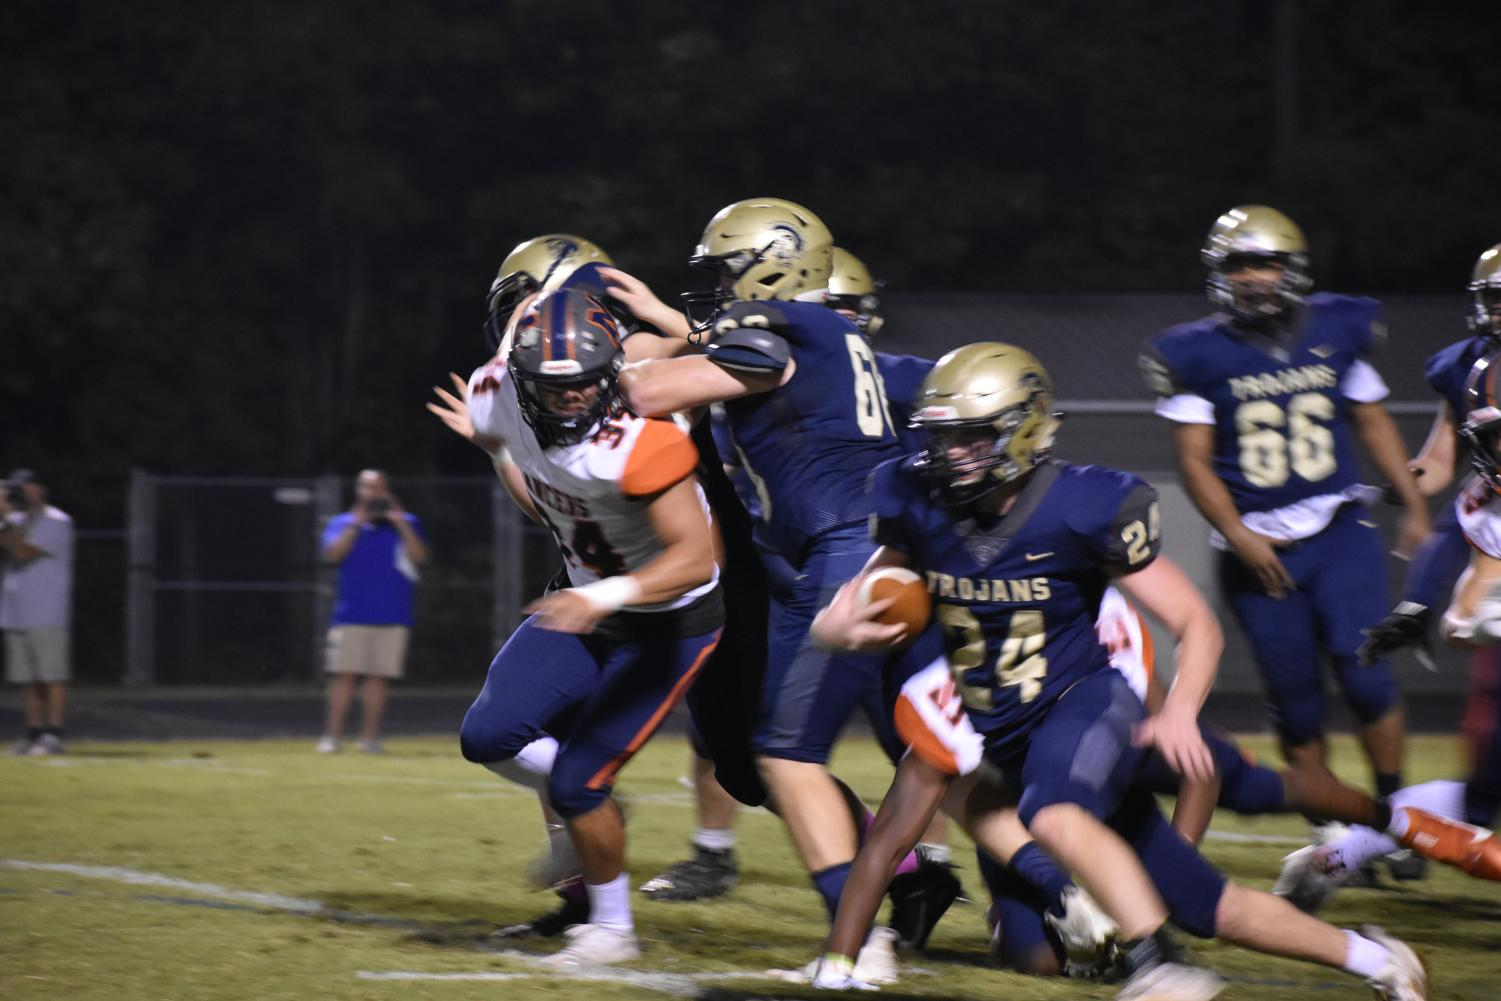 Midlo football walks away with a historic win against the Manchester Lancers.